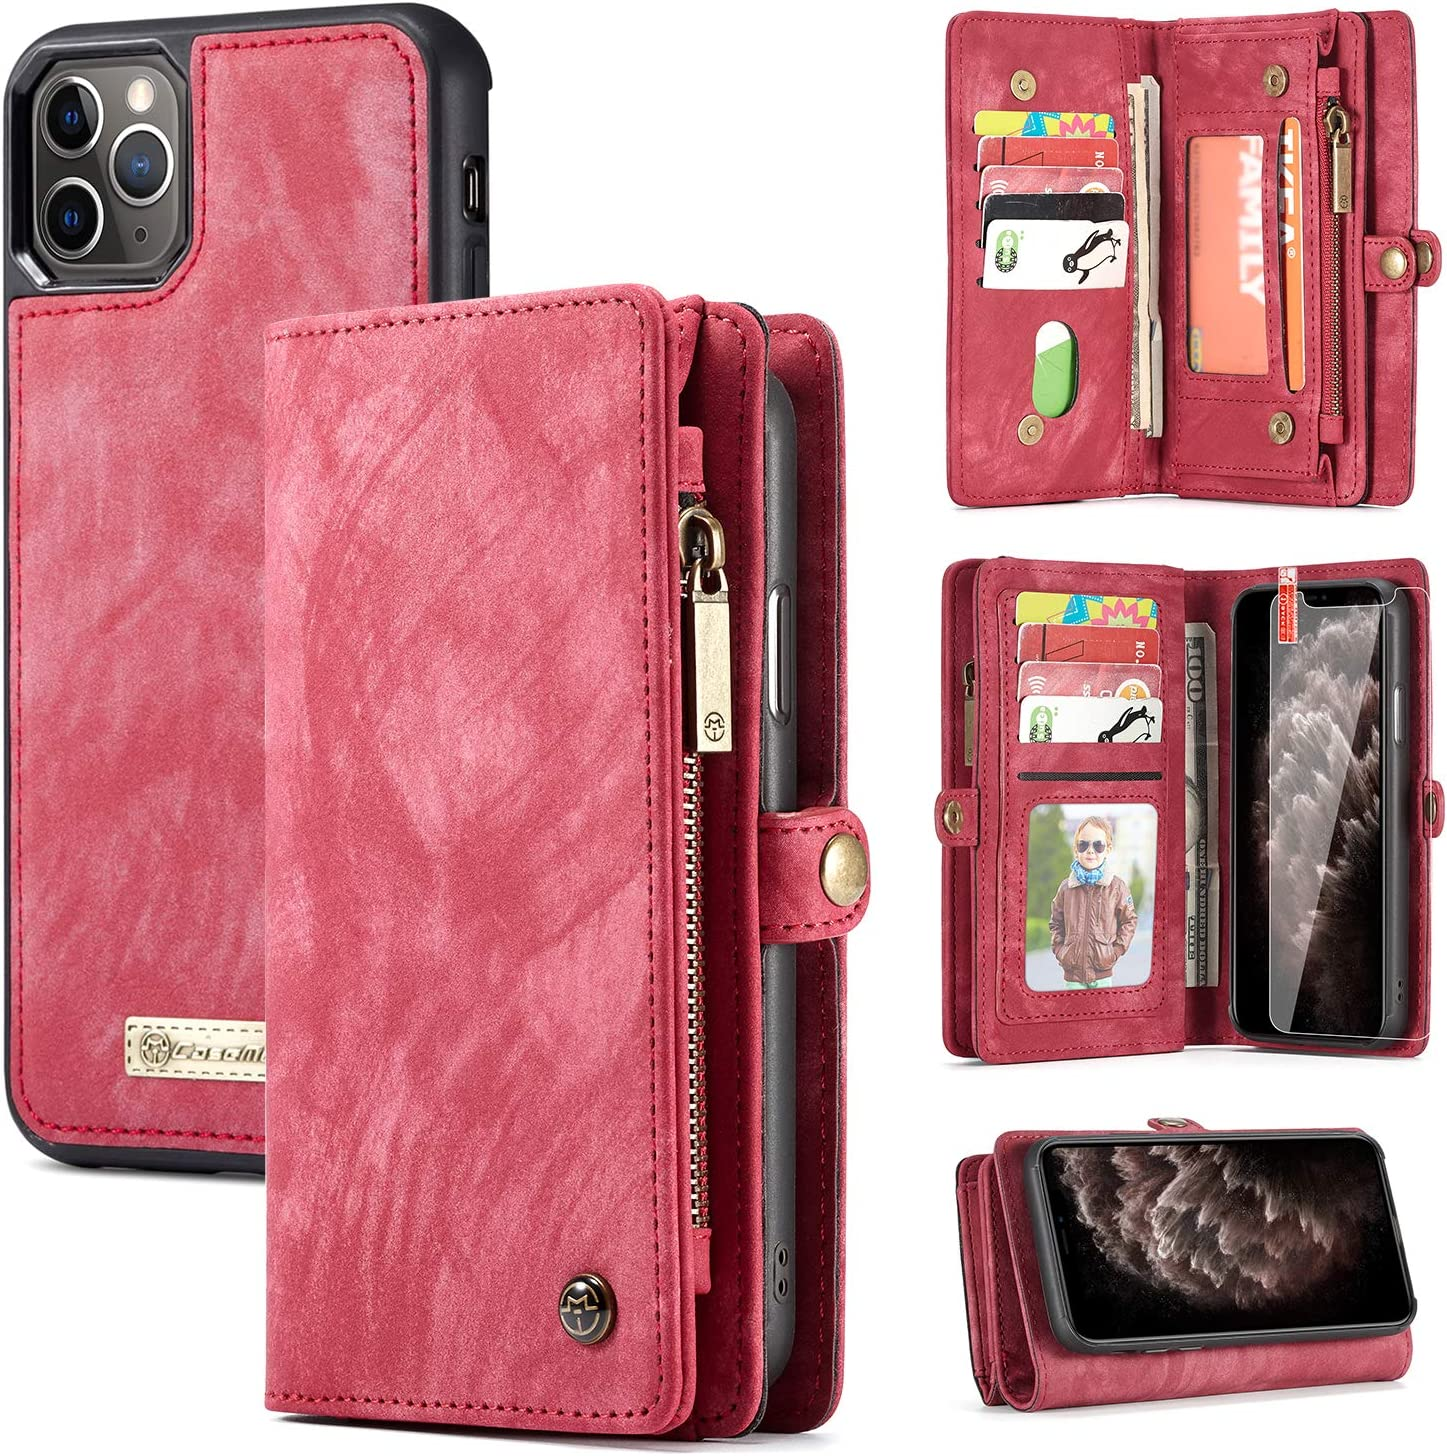 Zttopo iPhone 11 Pro Max Wallet Case, 2 in 1 Leather Zipper Detachable Magnetic 11 Card Slots Card Slots Money Pocket Clutch Cover with Screen Protector for 6.5 Inch